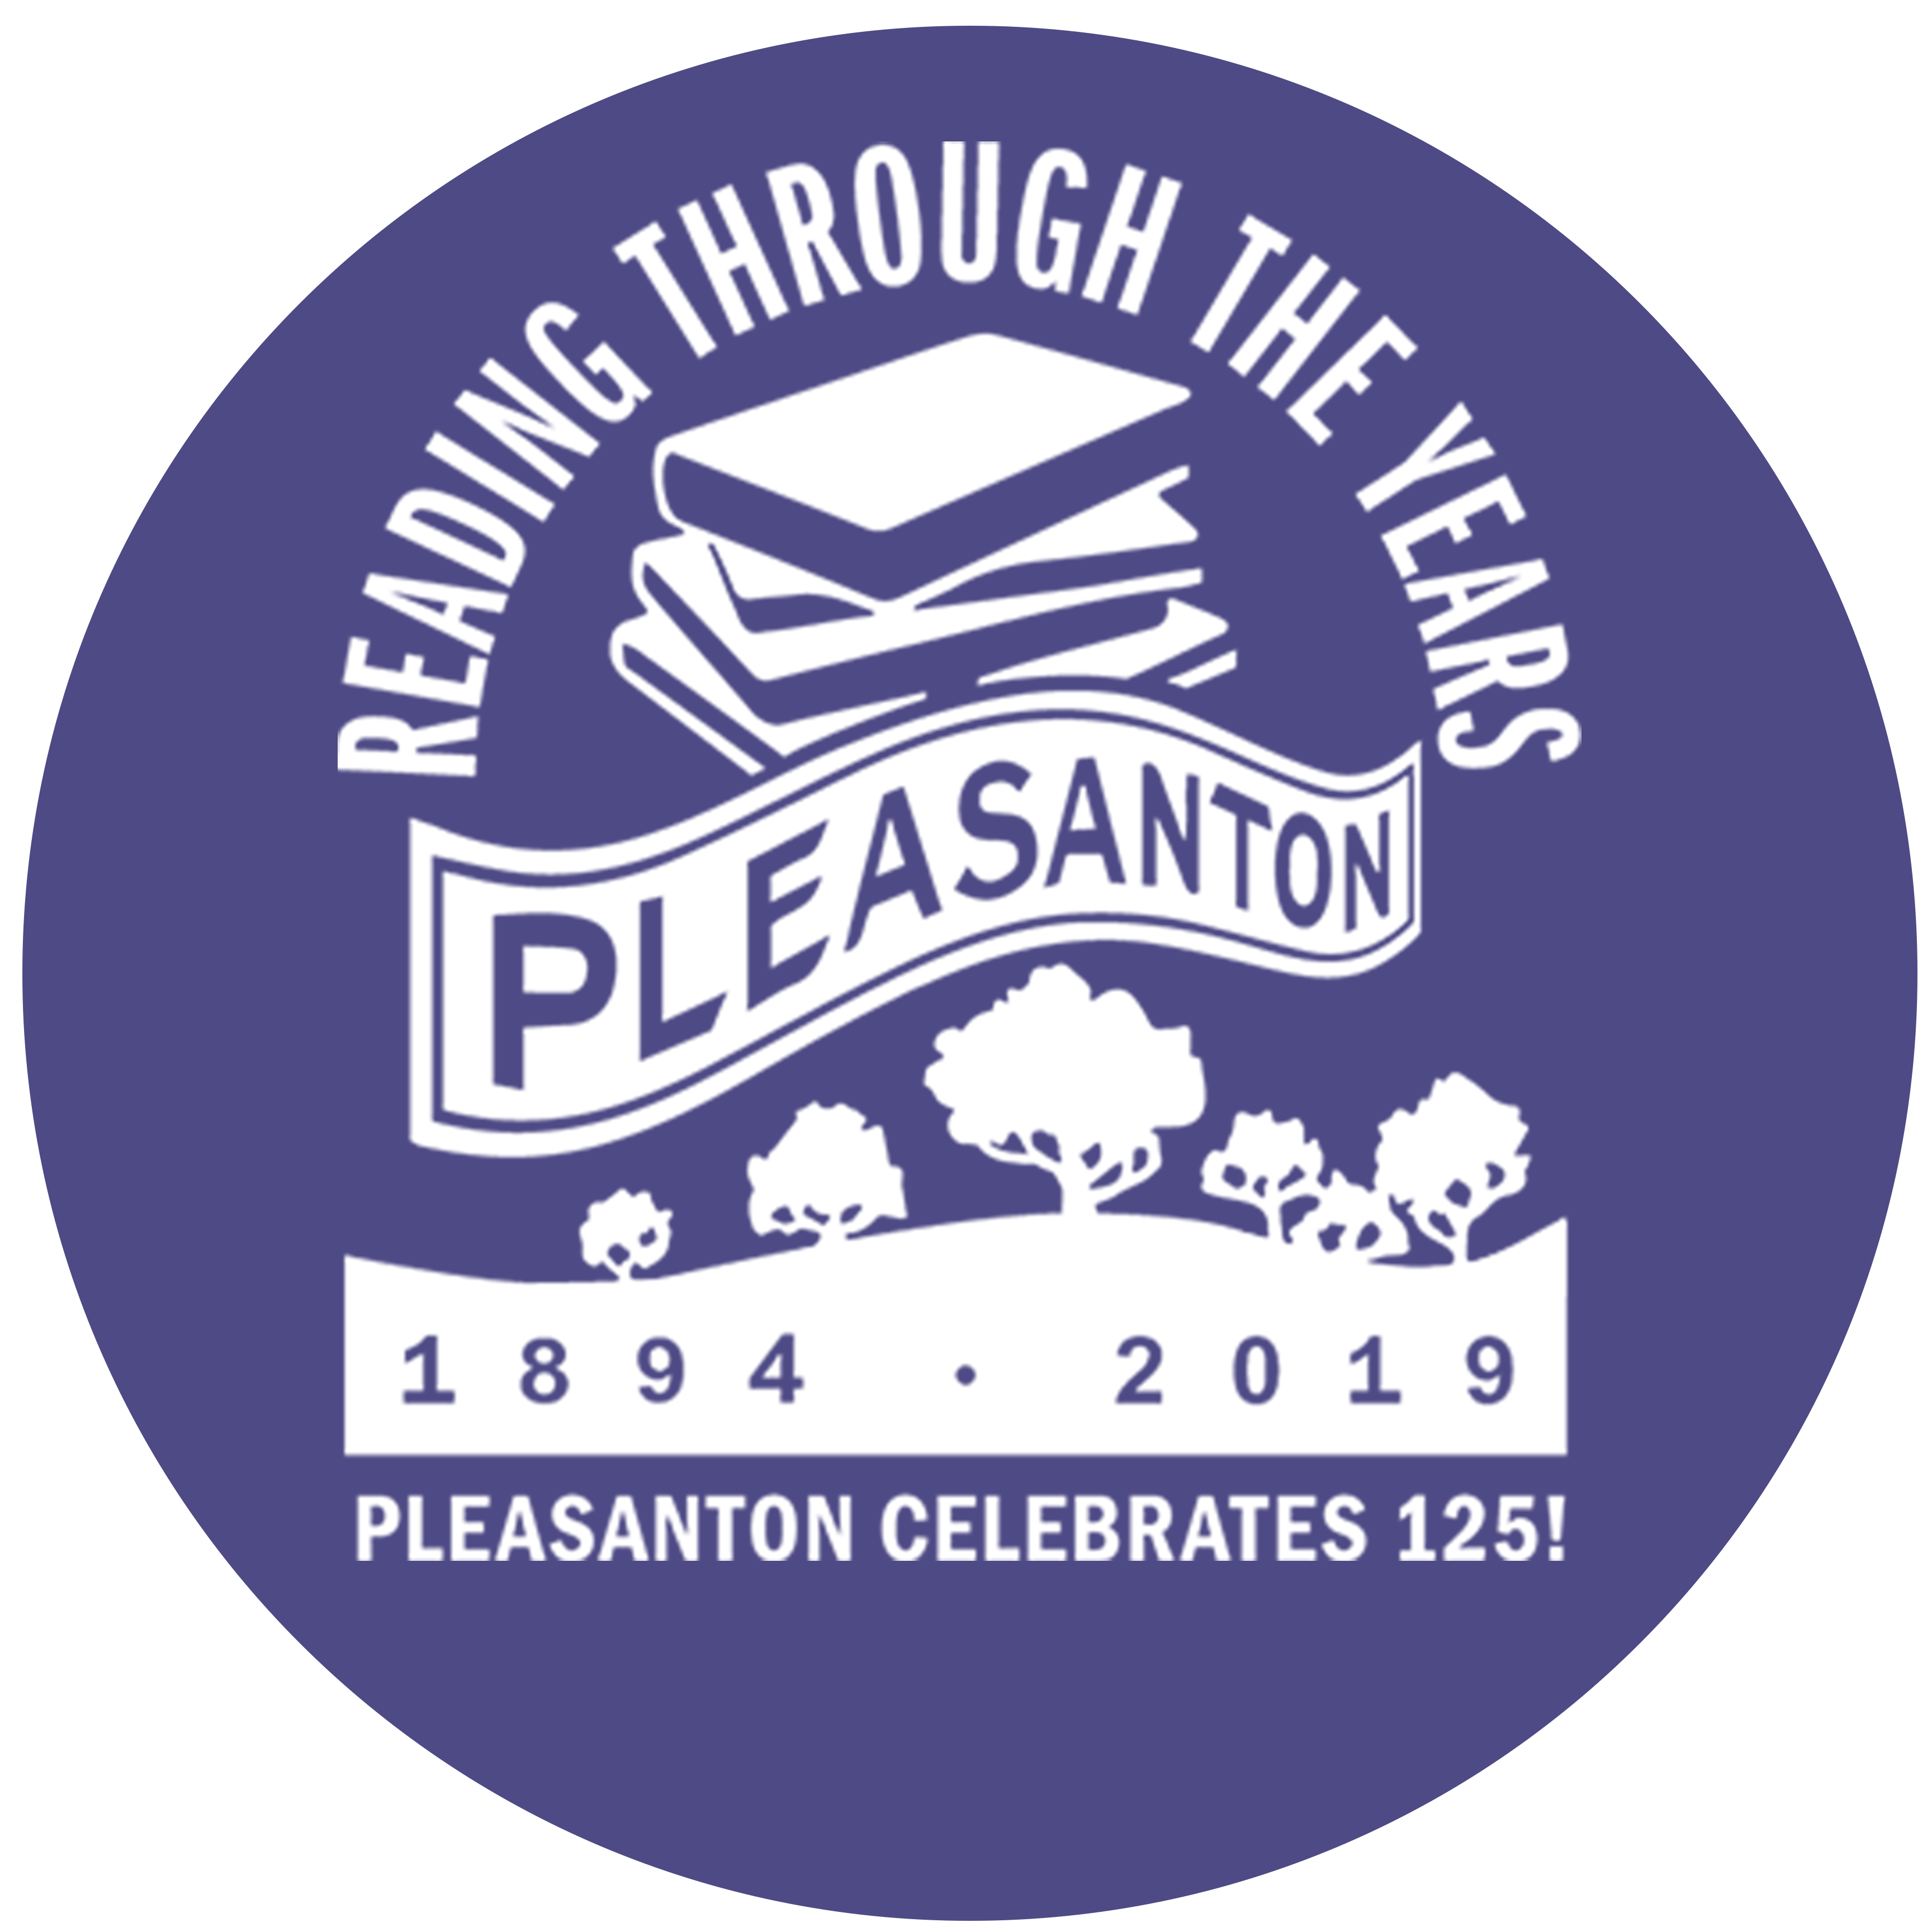 http://www.cityofpleasantonca.gov/gov/depts/lib/summer_reading_activities.asp